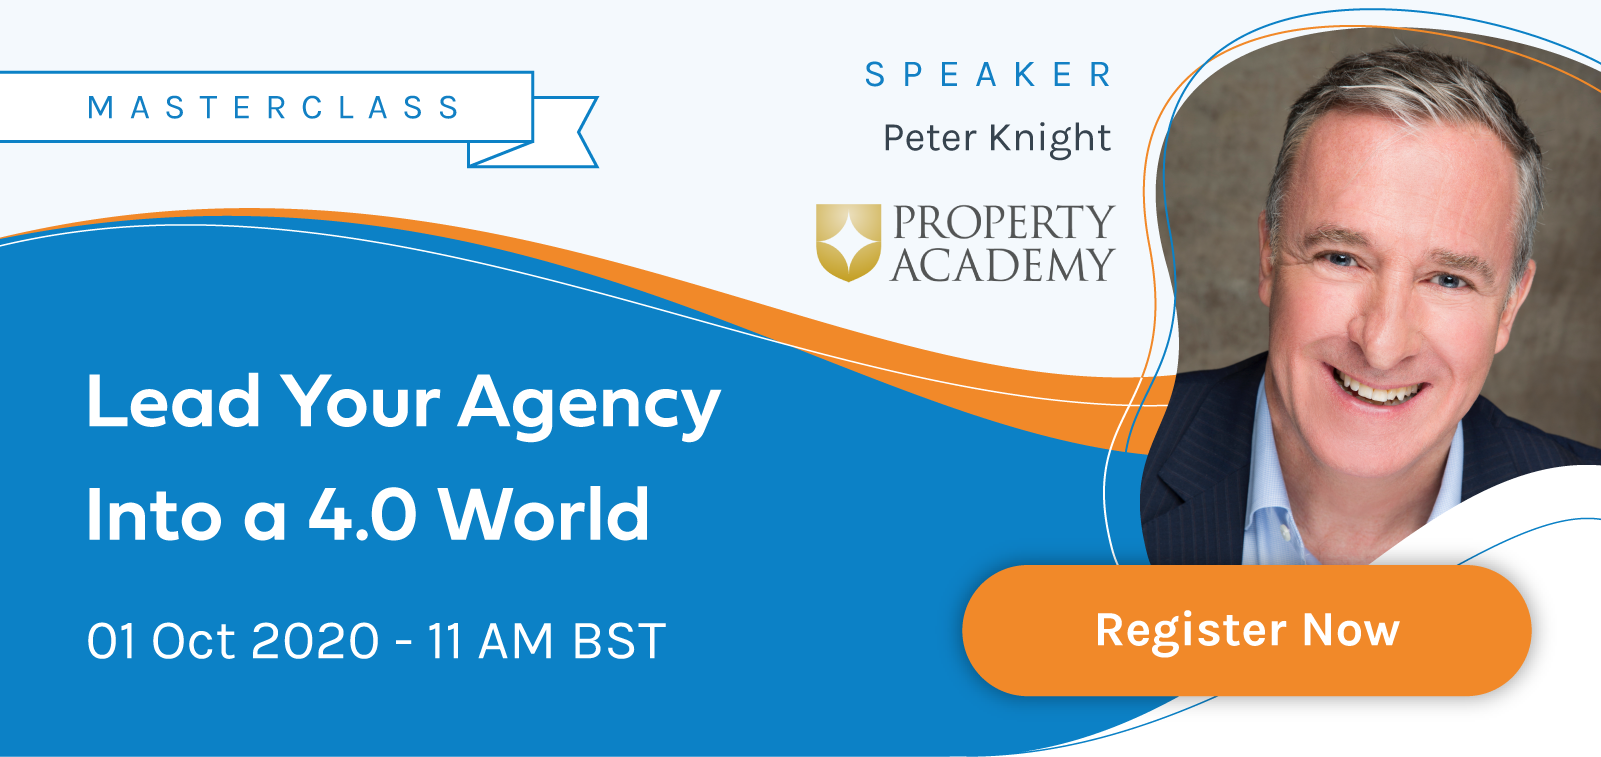 MC-14 Lead Your Agency into a 4.0 World_Email